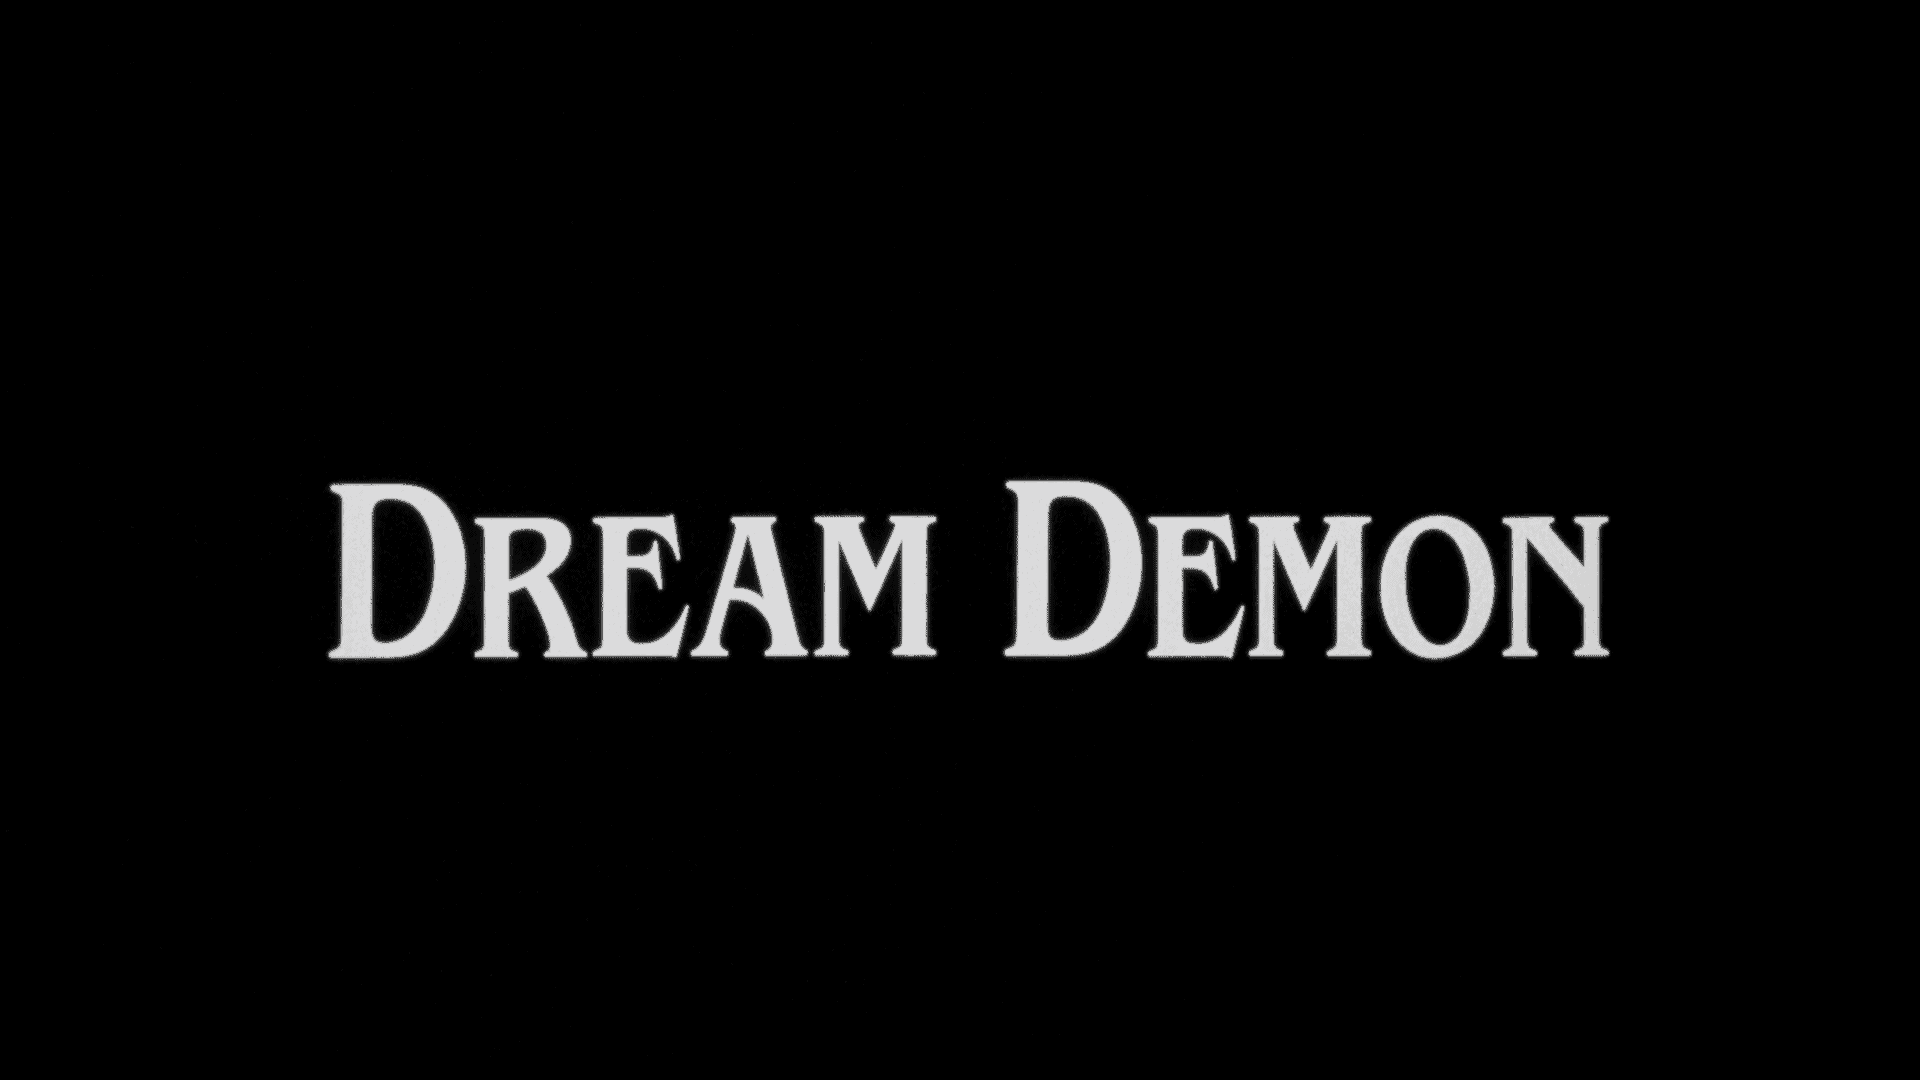 dream demon title